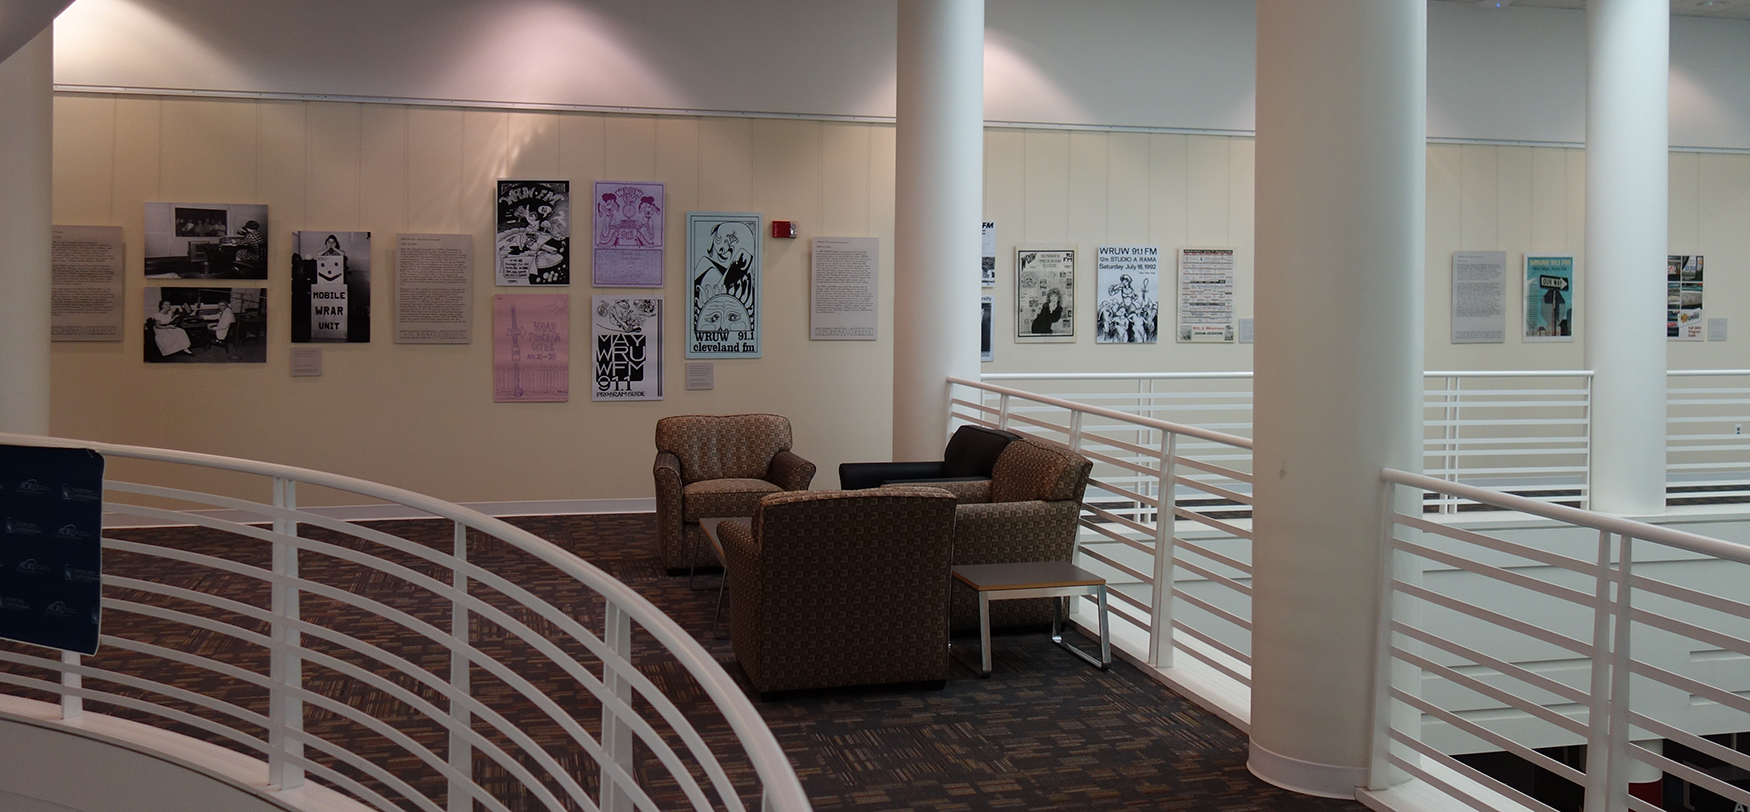 Image of exhibit physically on view at Kelvin Smith Library.